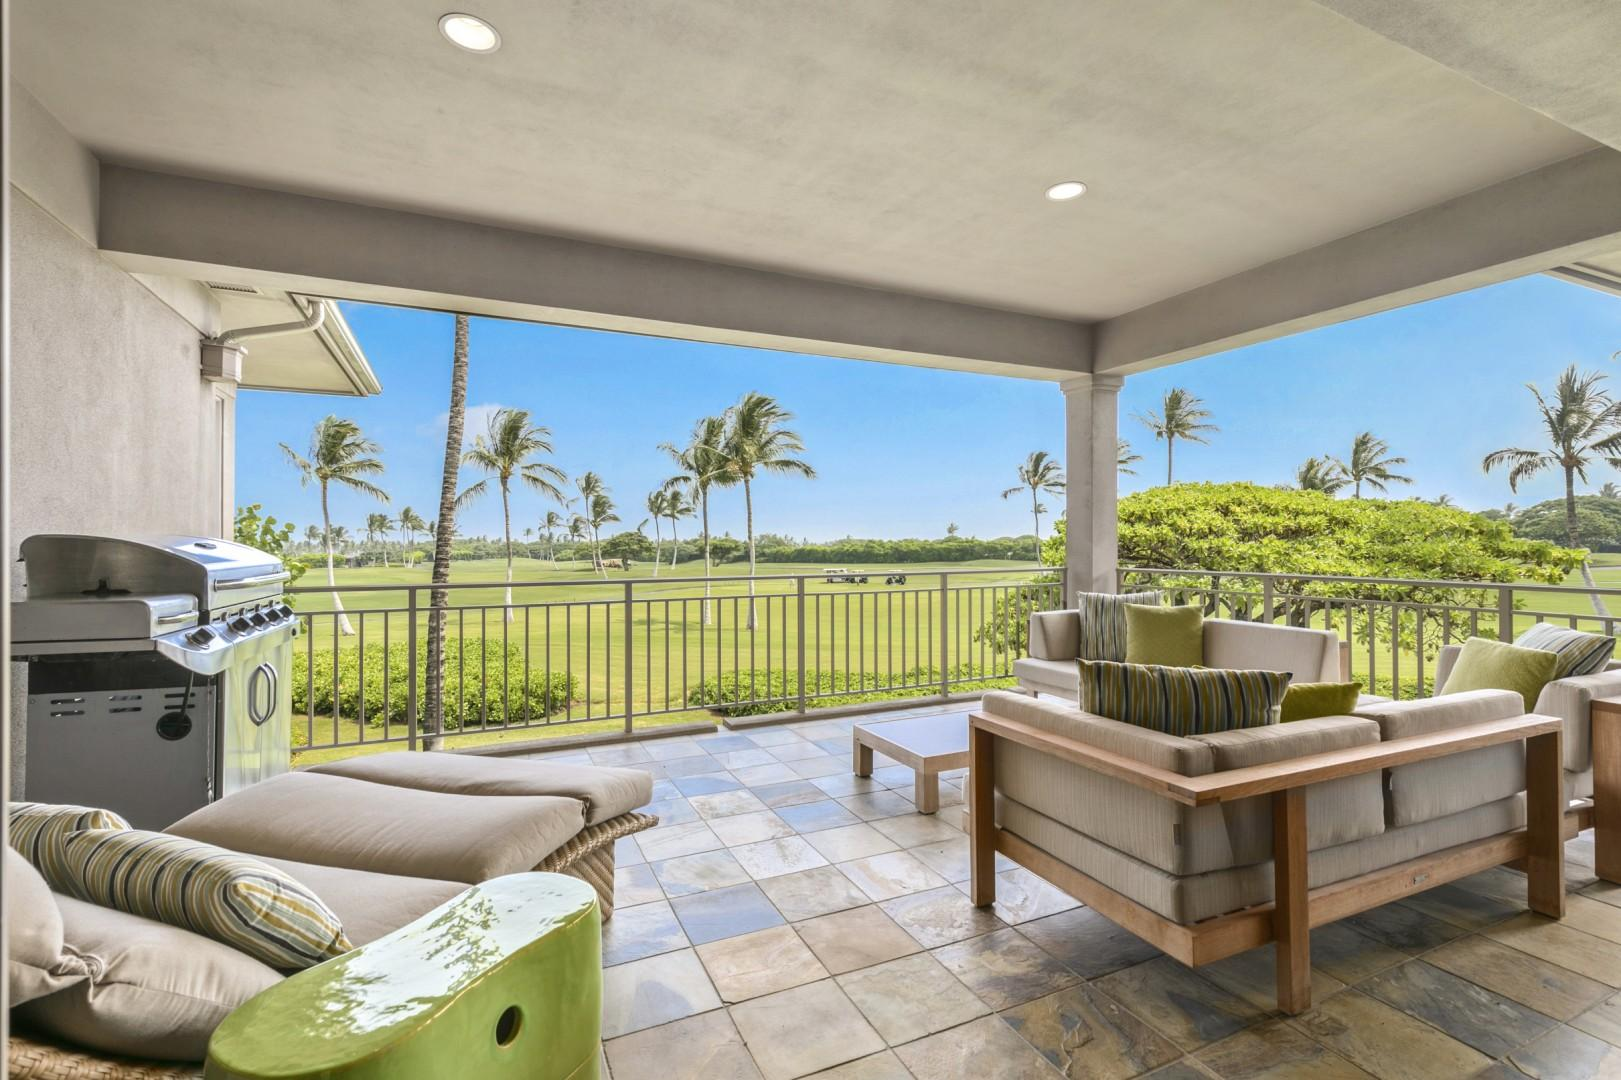 Generous Covered Lanai with Ample Seating & Views of the Hualalai Golf Course Green, Palm Trees, and Pacific Ocean Beyond.